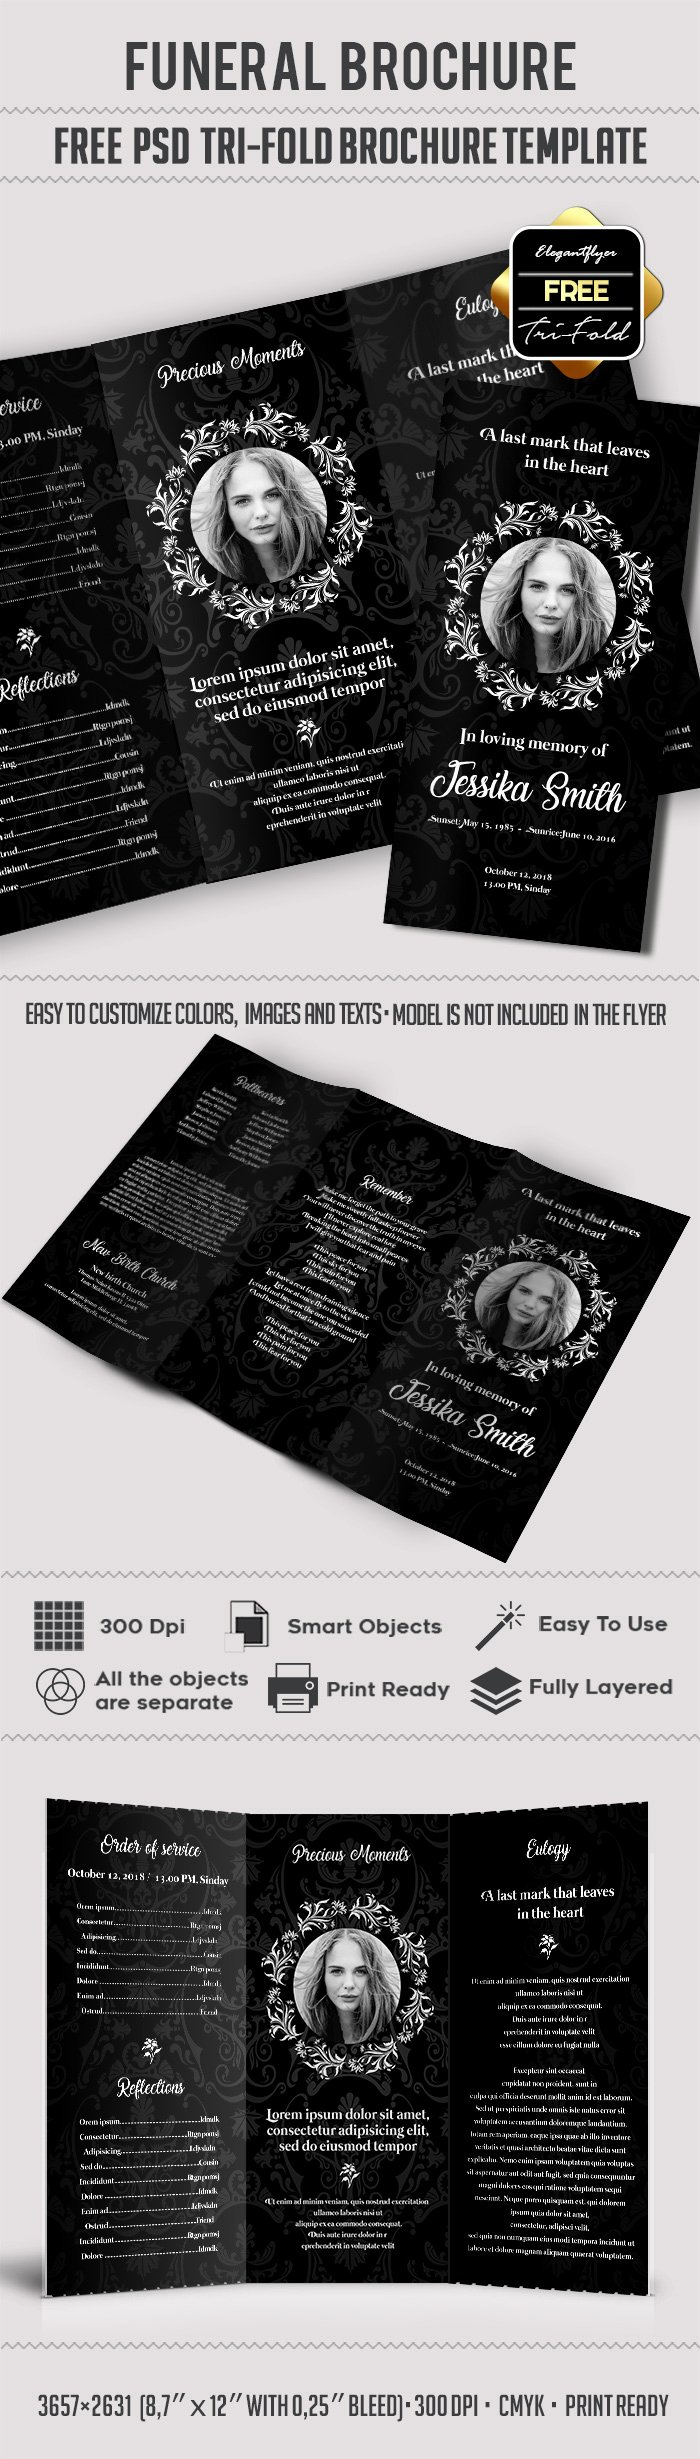 Free Funeral Brochure Template Awesome Free Funeral Trifold Brochure – by Elegantflyer